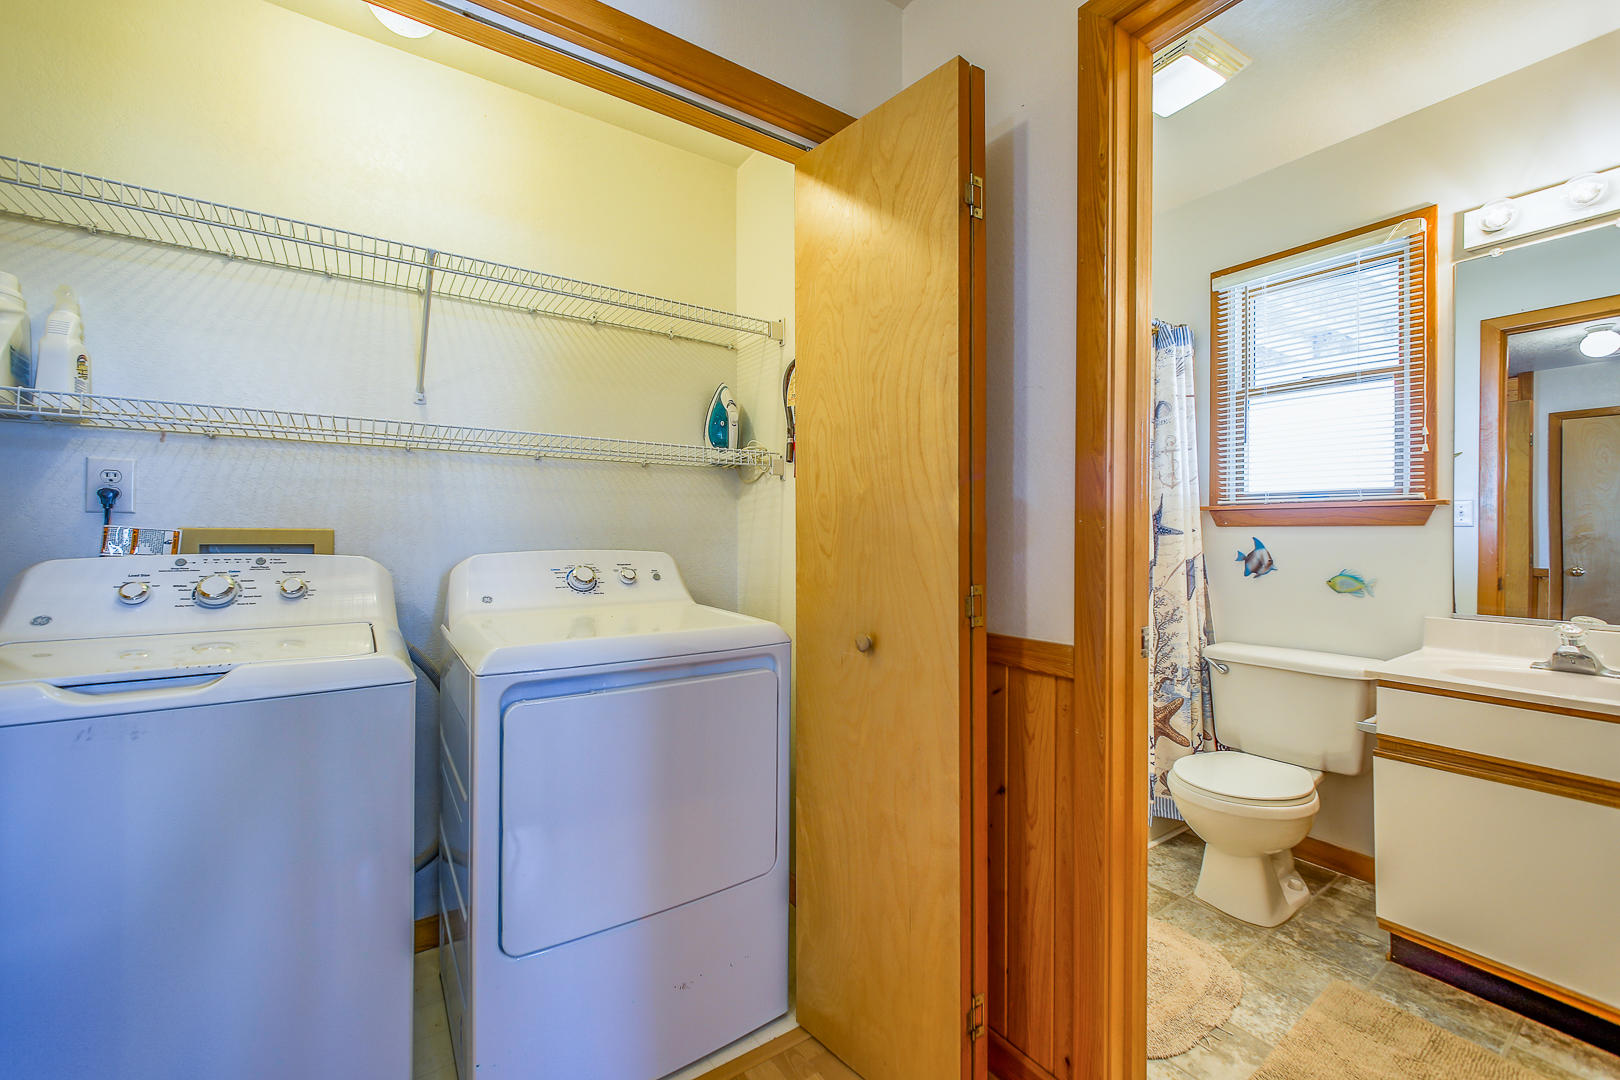 Laundry and Bathroom on mid-level